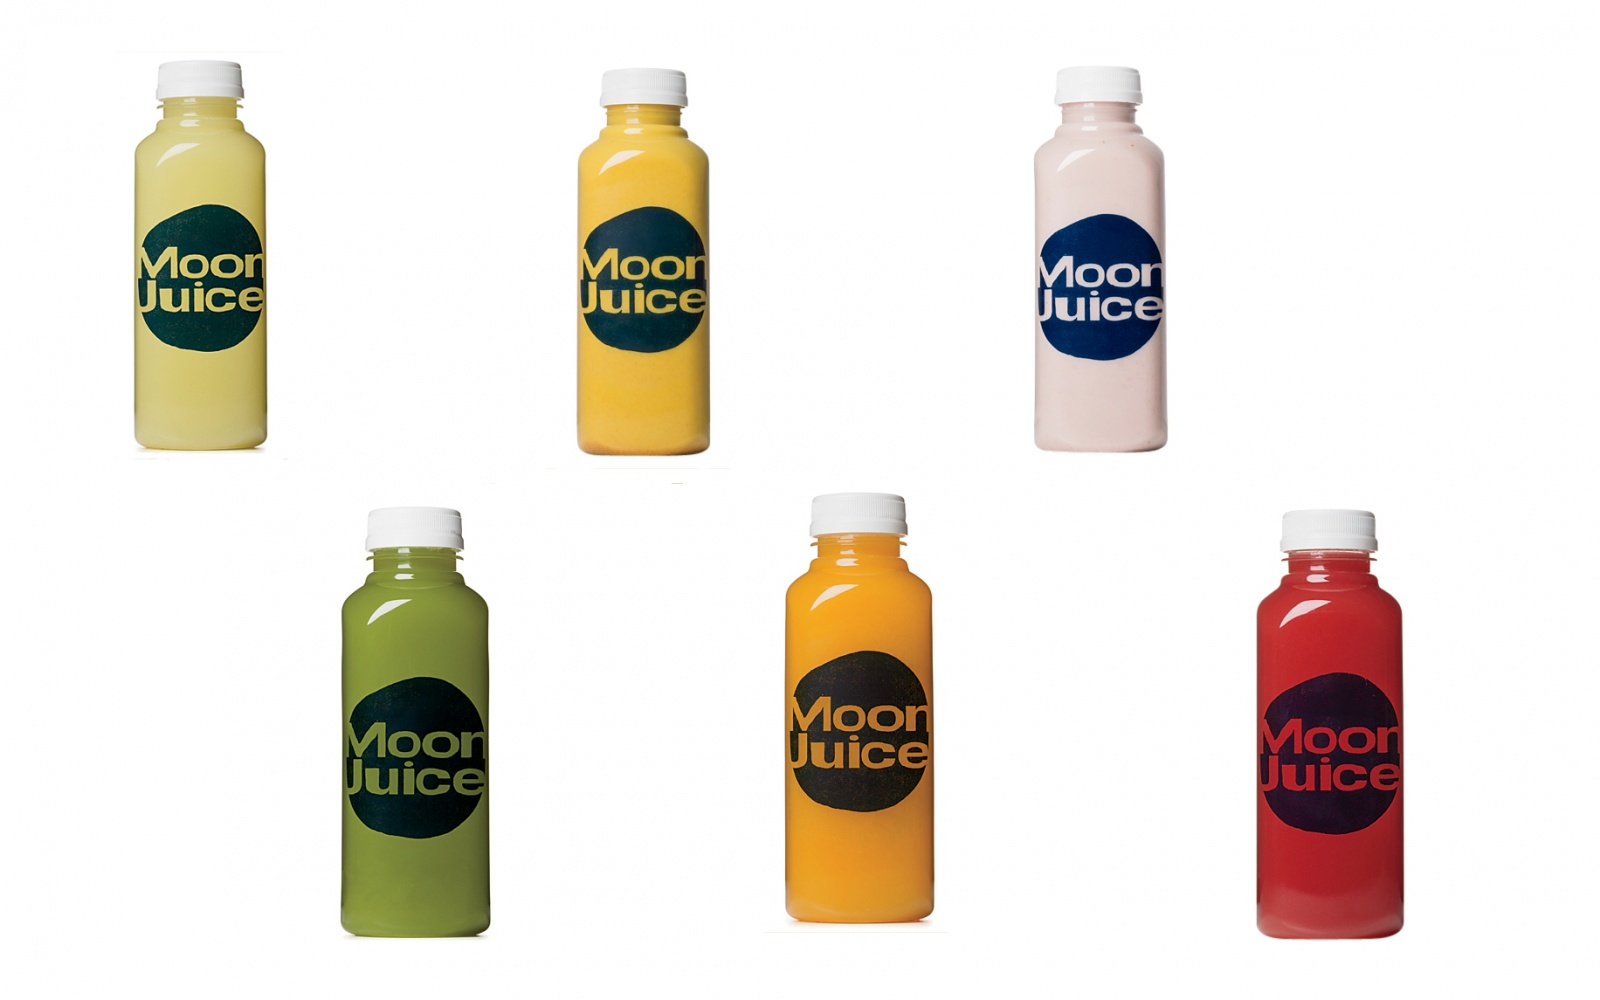 Moon Juice bottles